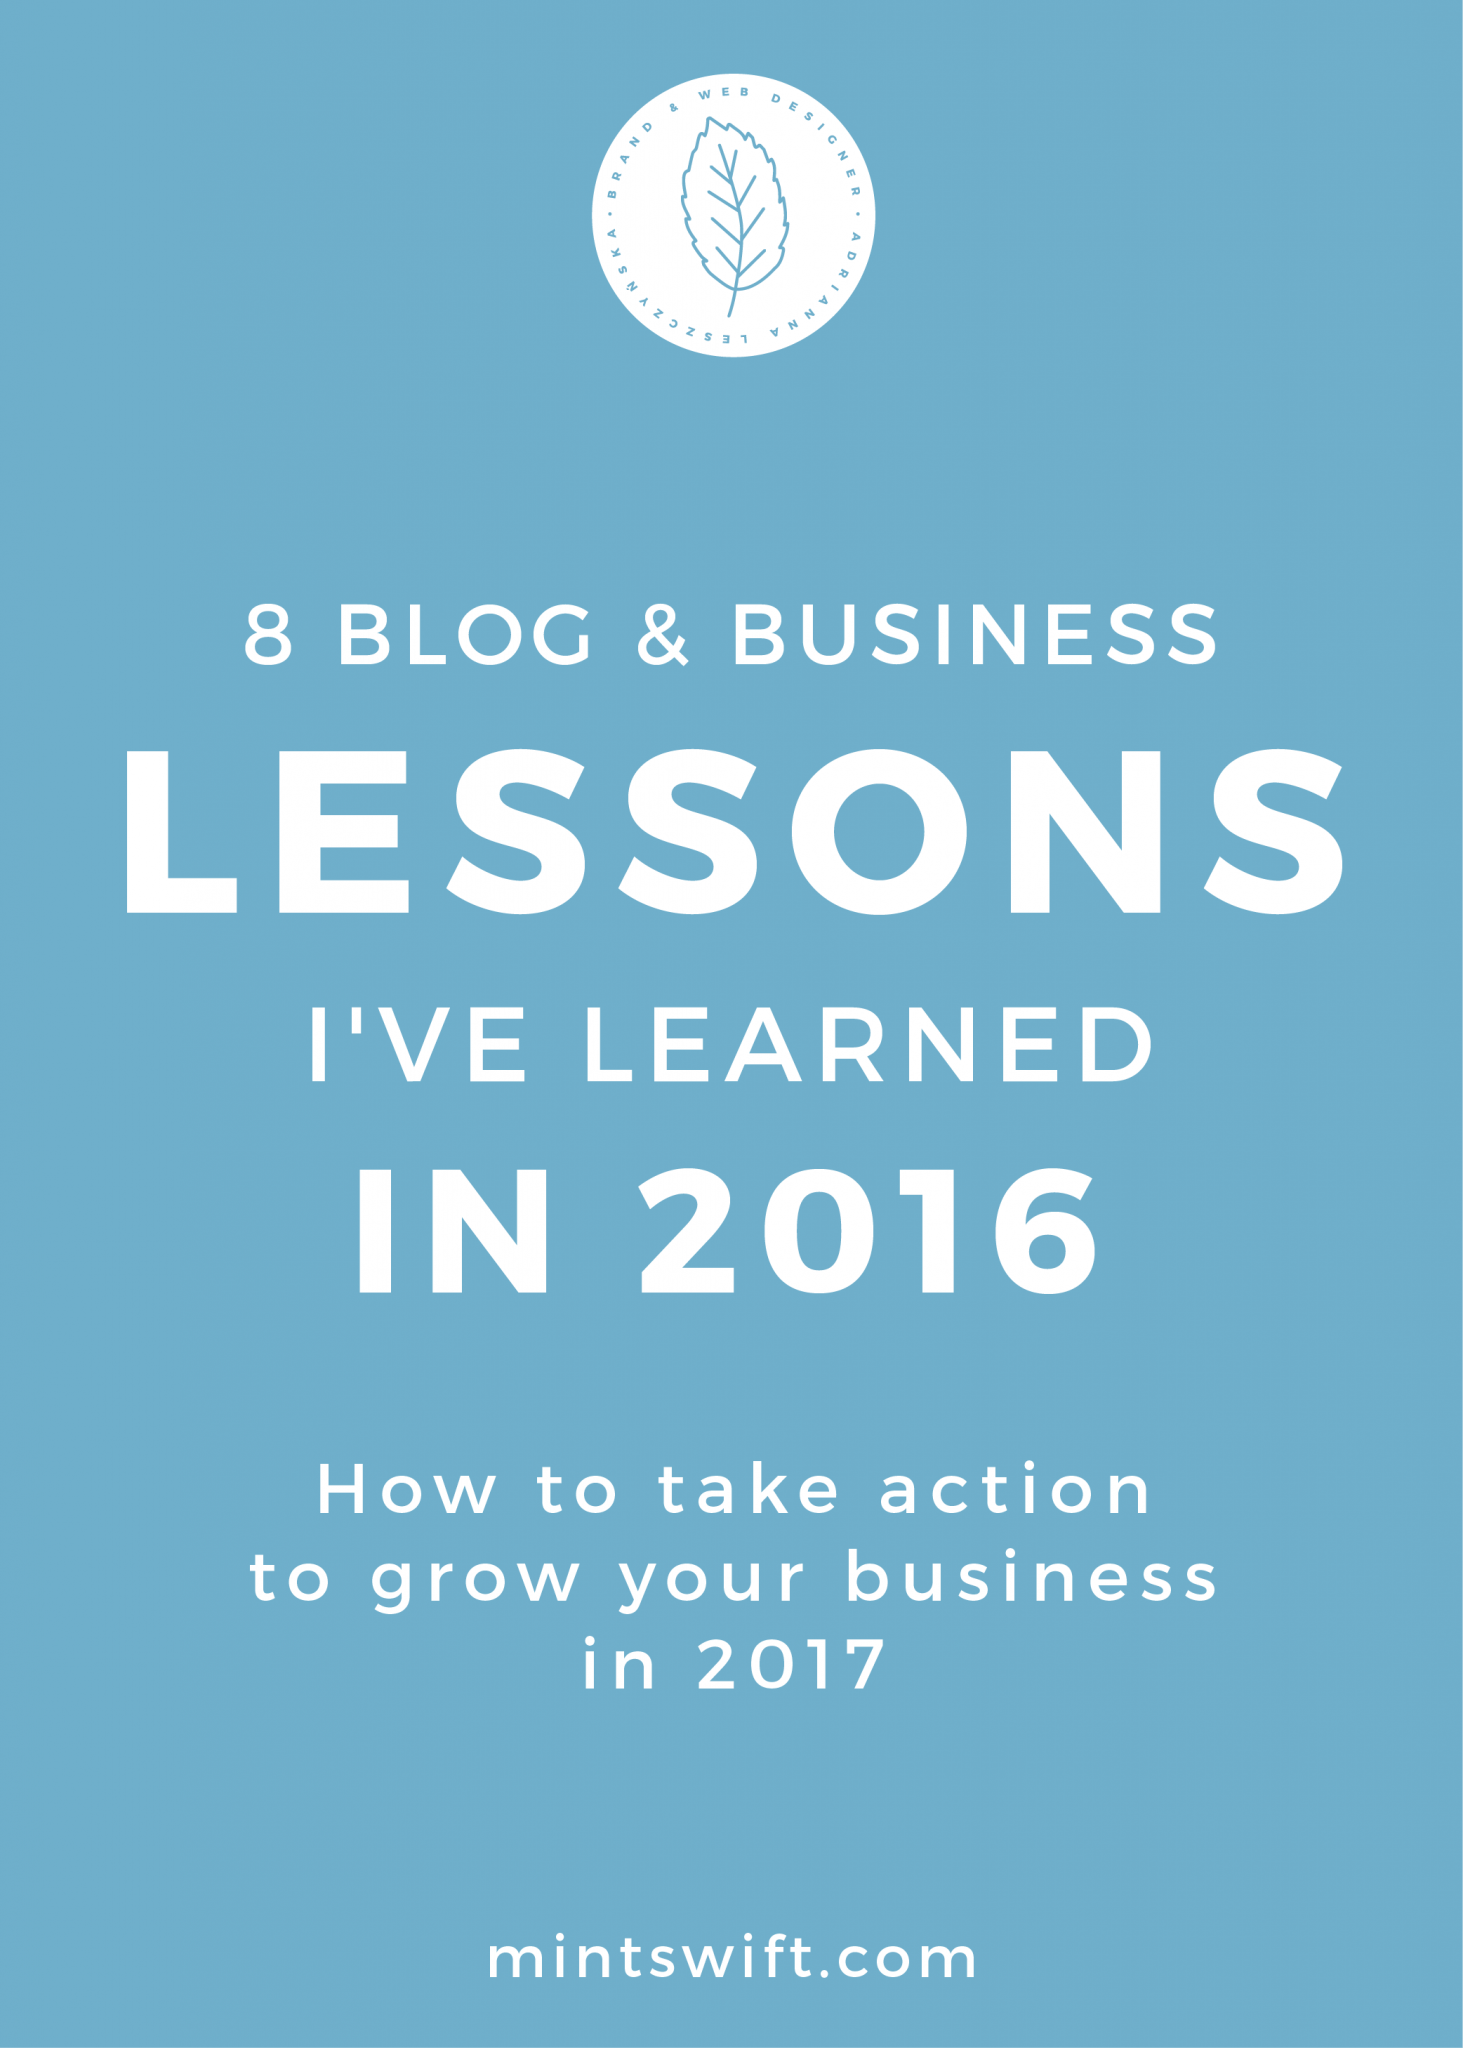 8 Blog and Business Lessons I've Learned In 2016 + How to Take Action to Grow Your Business in 2017 - MintSwift